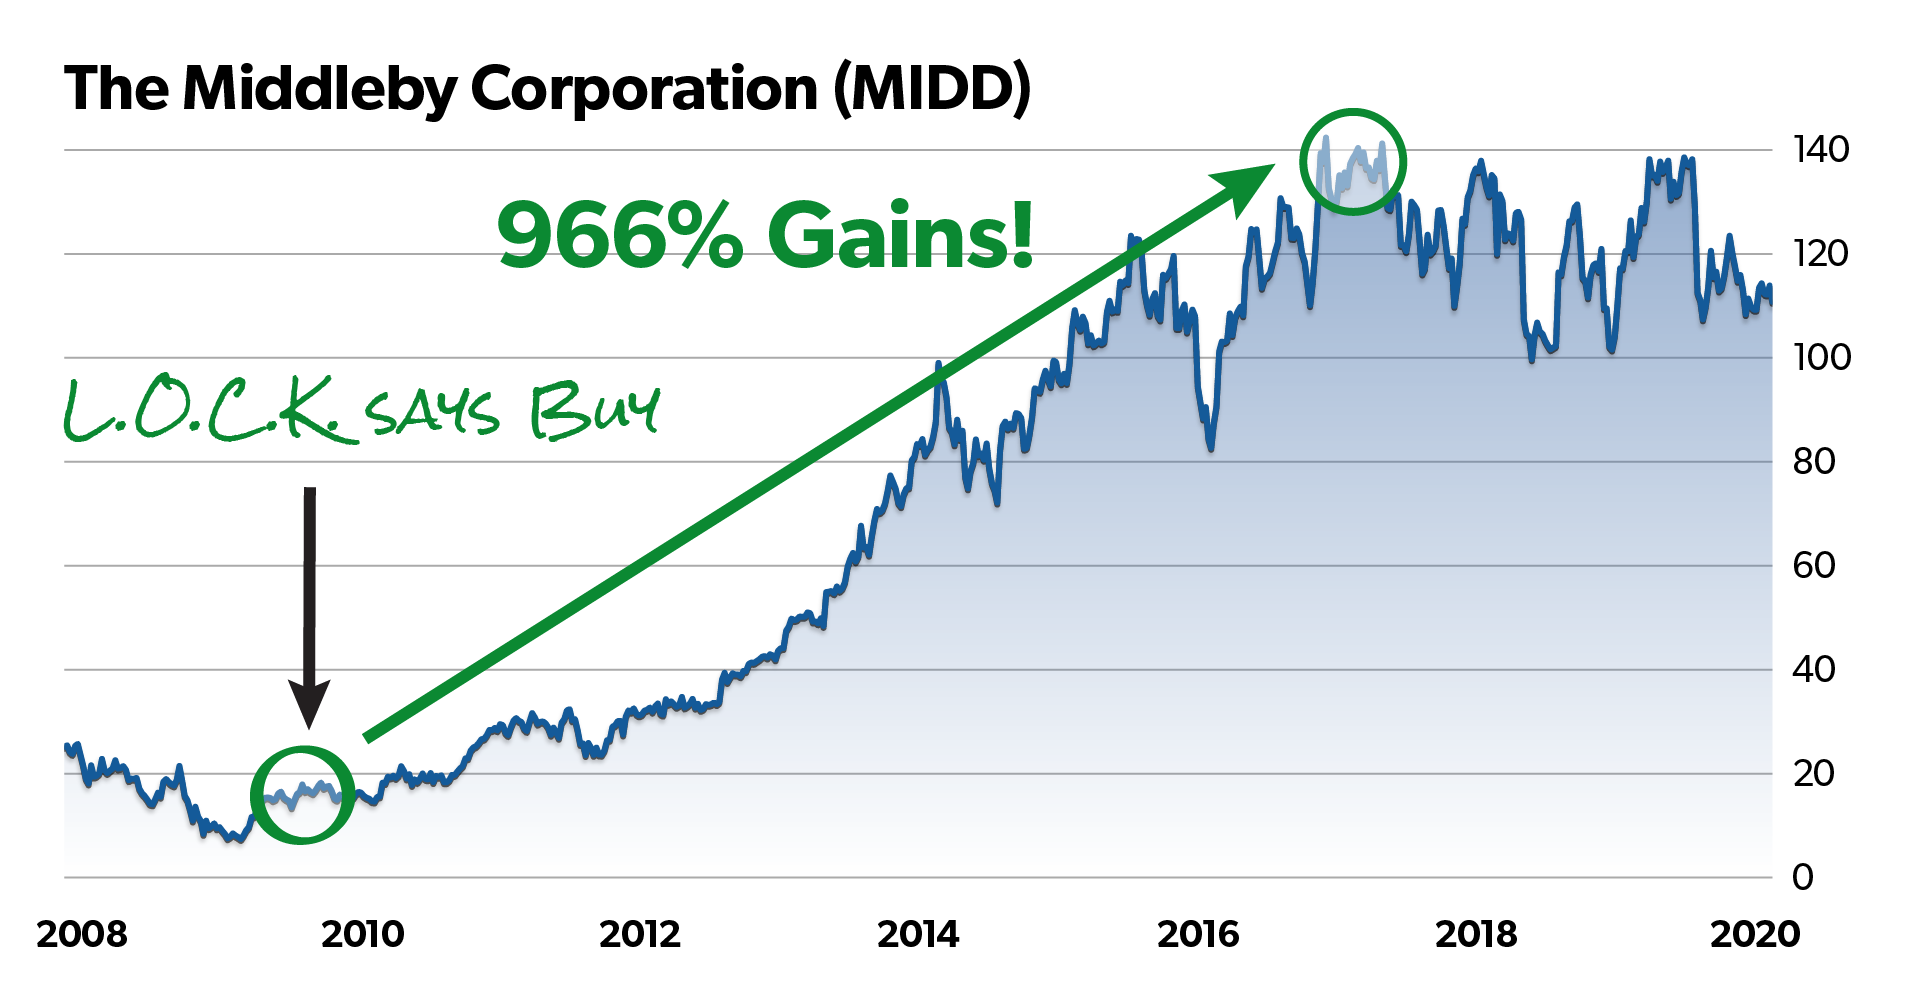 Middleby Corporation chart with red circle around recommendation date. Caption with arrow pointing to circle should read: L.O.C.K. says Buy. 966% gains!